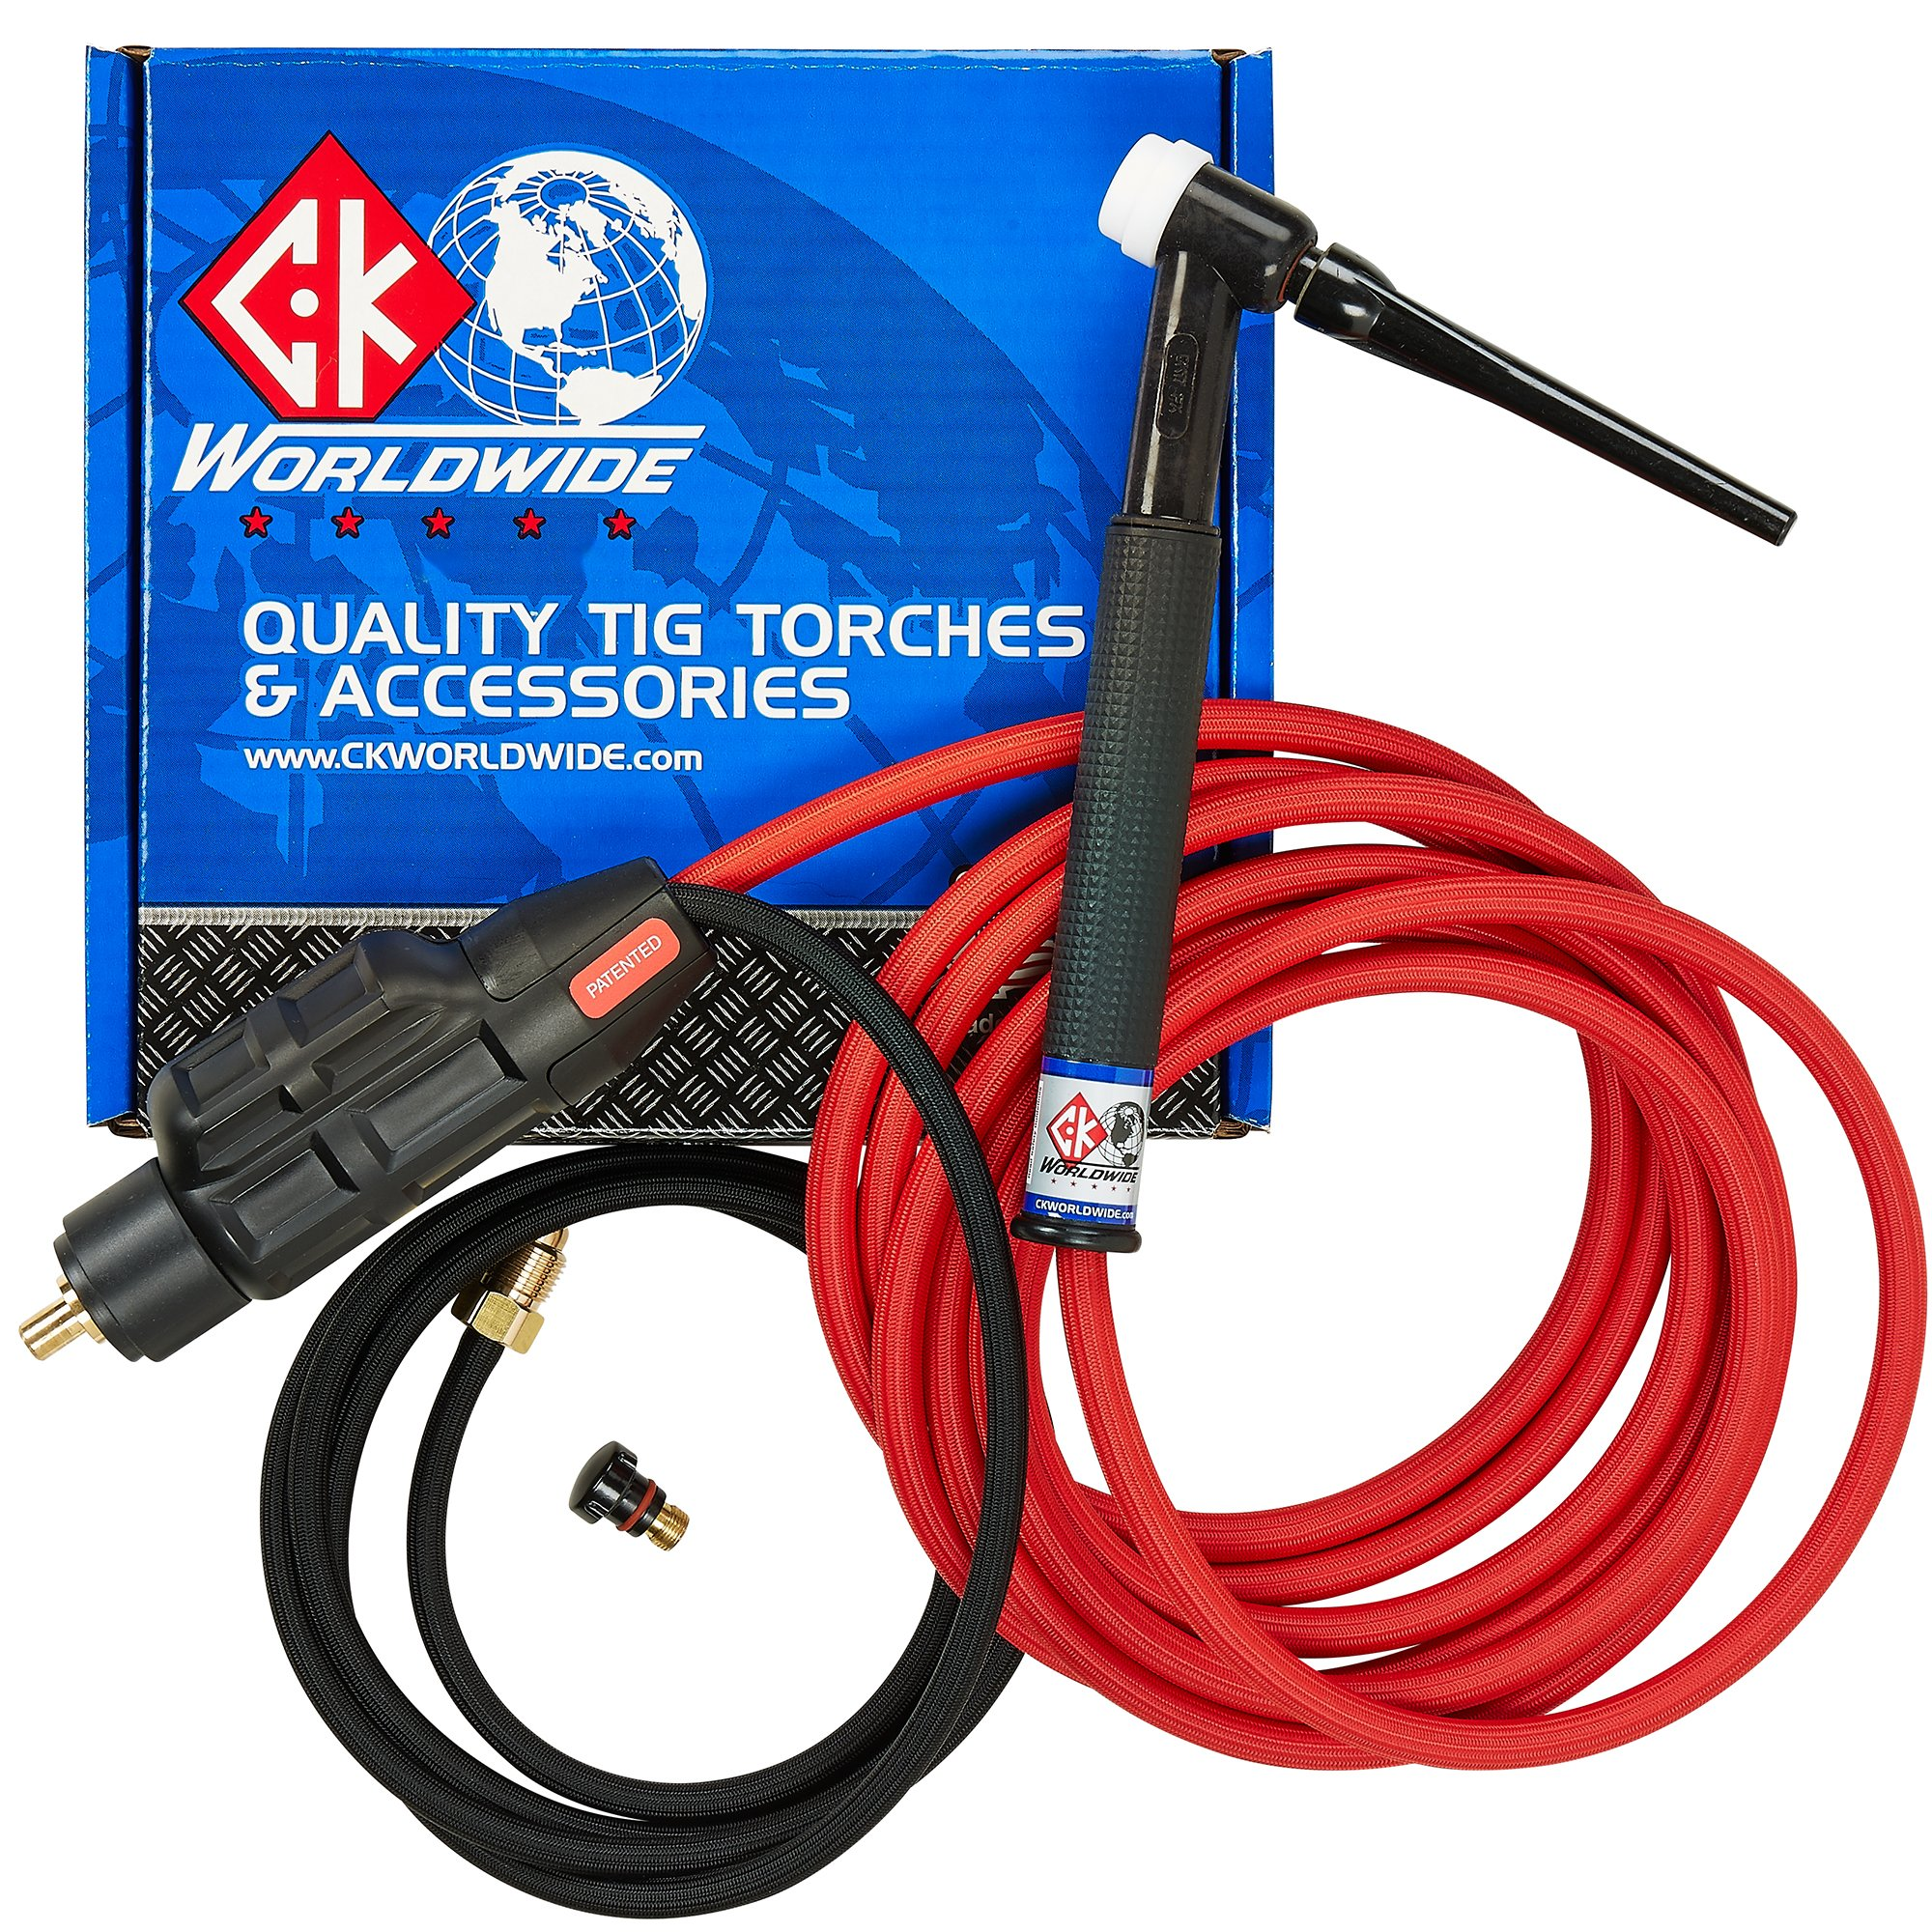 PRIMEWELD TIG225X 225 Amp IGBT AC DC Tig/Stick Welder with Pulse CK17 Flex Torch and Cable 3 Year Warranty by PRIMEWELD (Image #4)